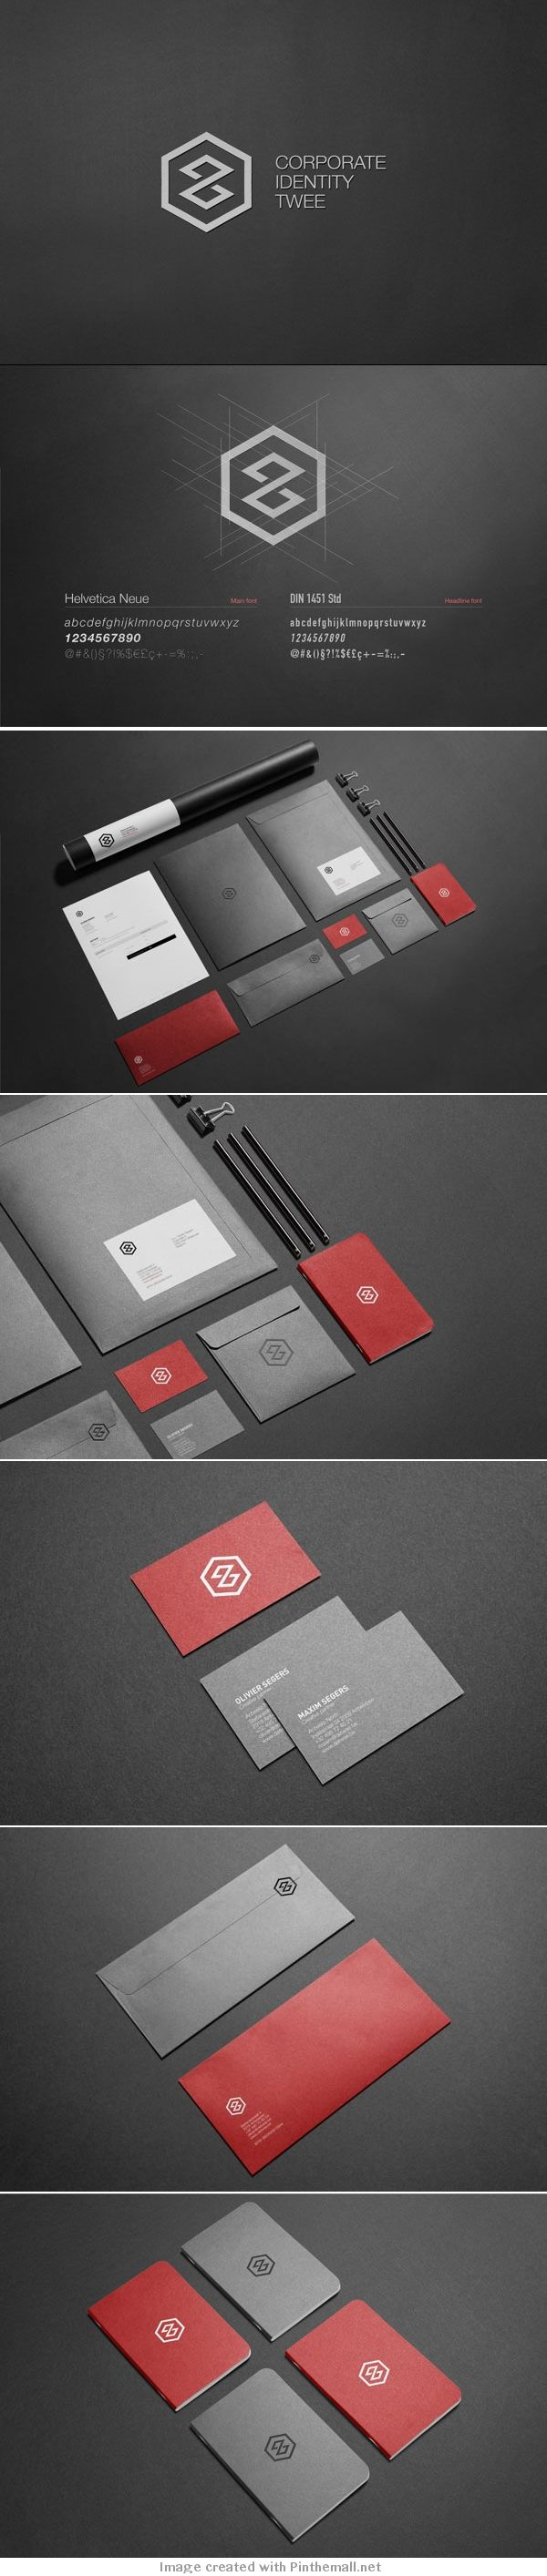 Creative Brand Design corporate business card identity If You Like this Like our Page : https://www.facebook.com/dreamsdesign.co?ref=hl  Website : http://www.dreamsdesign.in/ Email : info@dreamsdesign.in